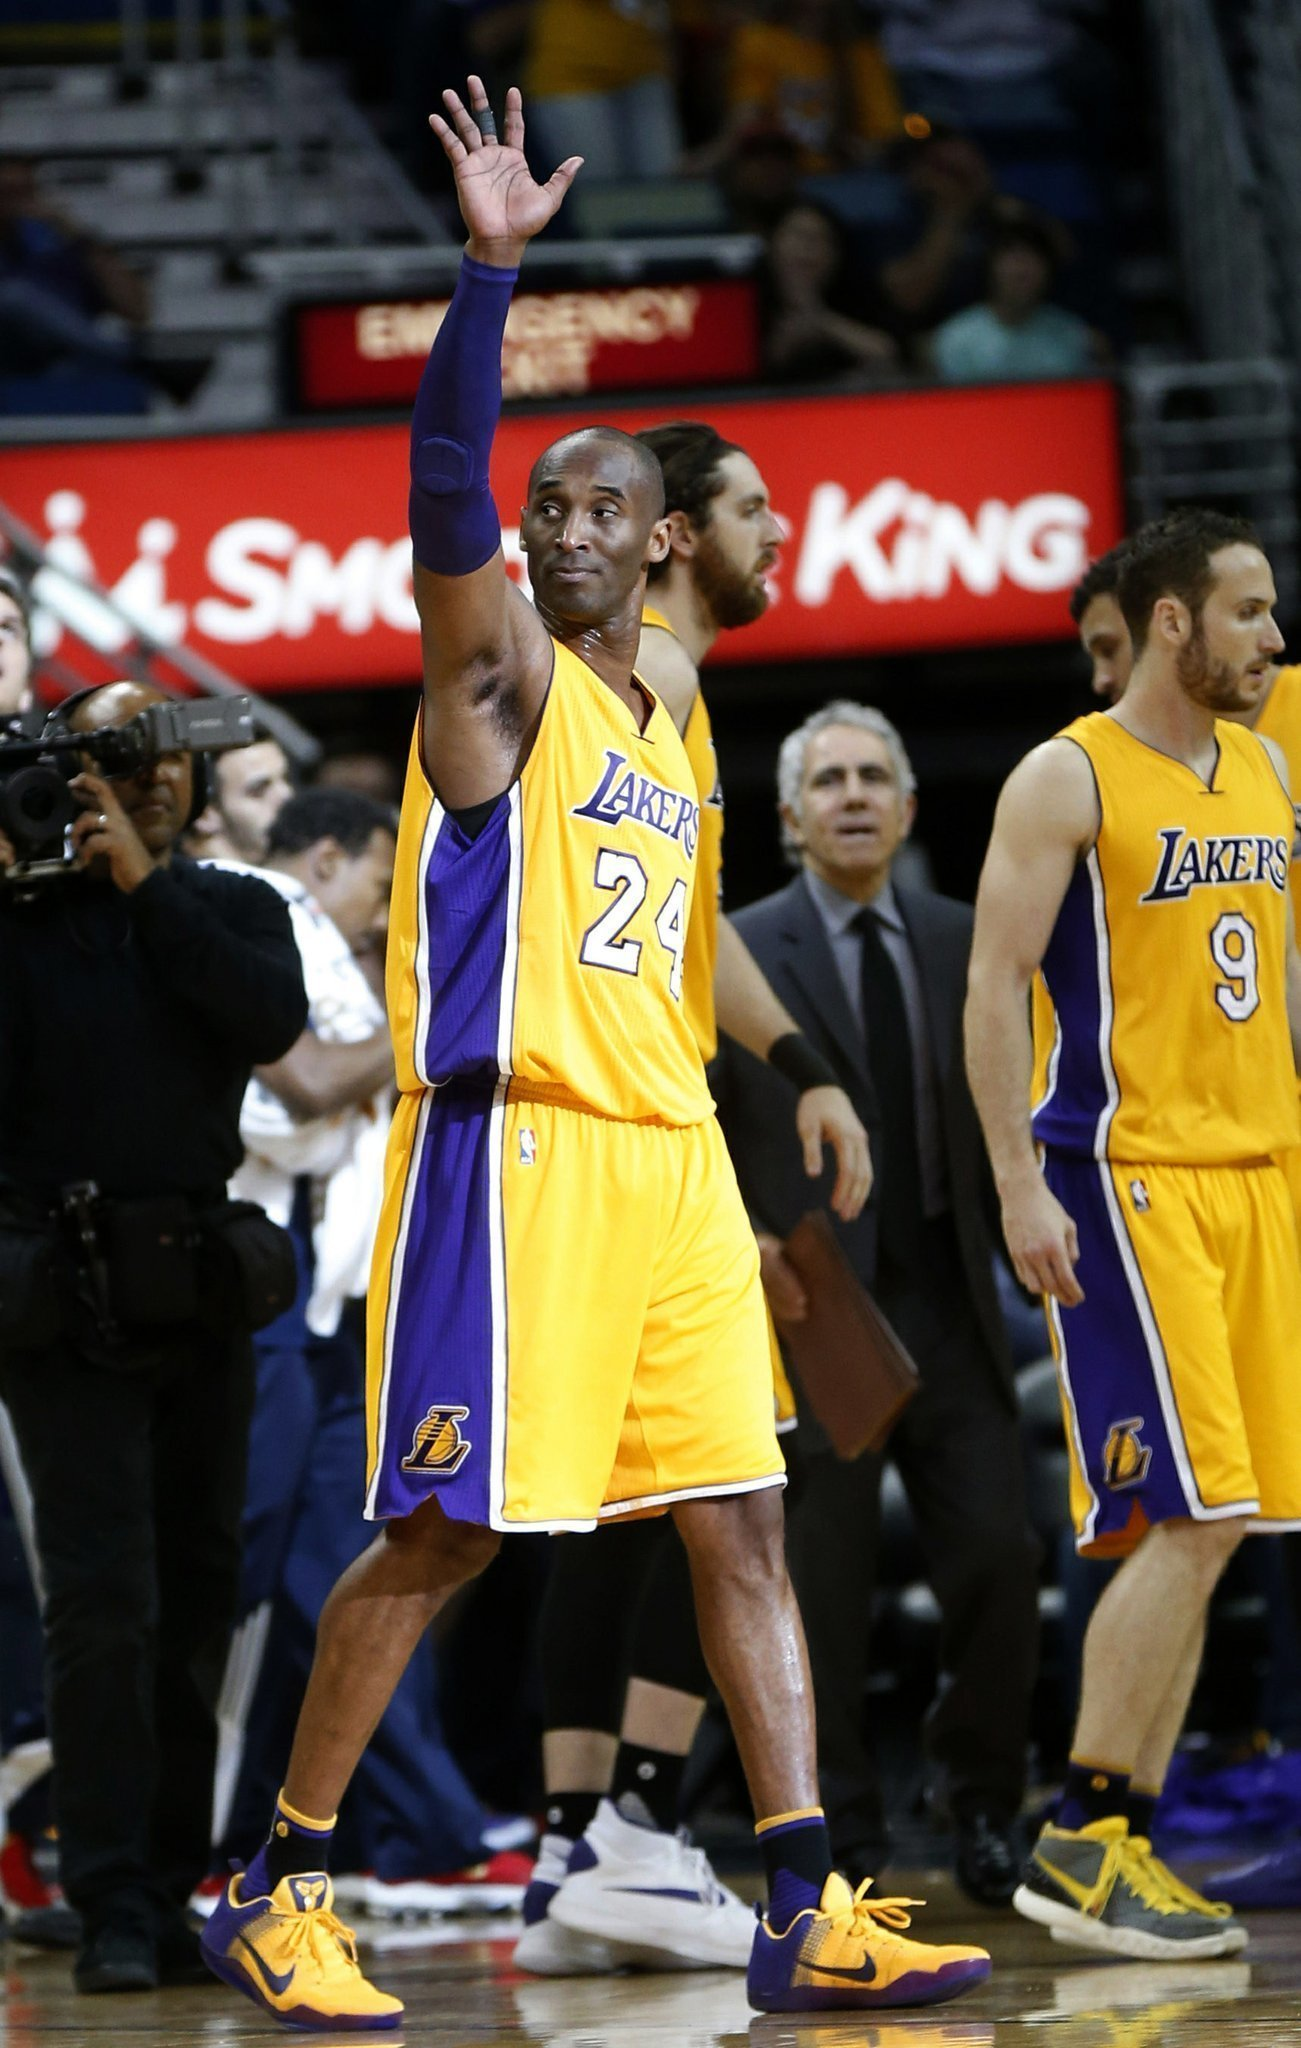 Pelicans beat lakers kobe bryant 110 102 the san diego union tribune